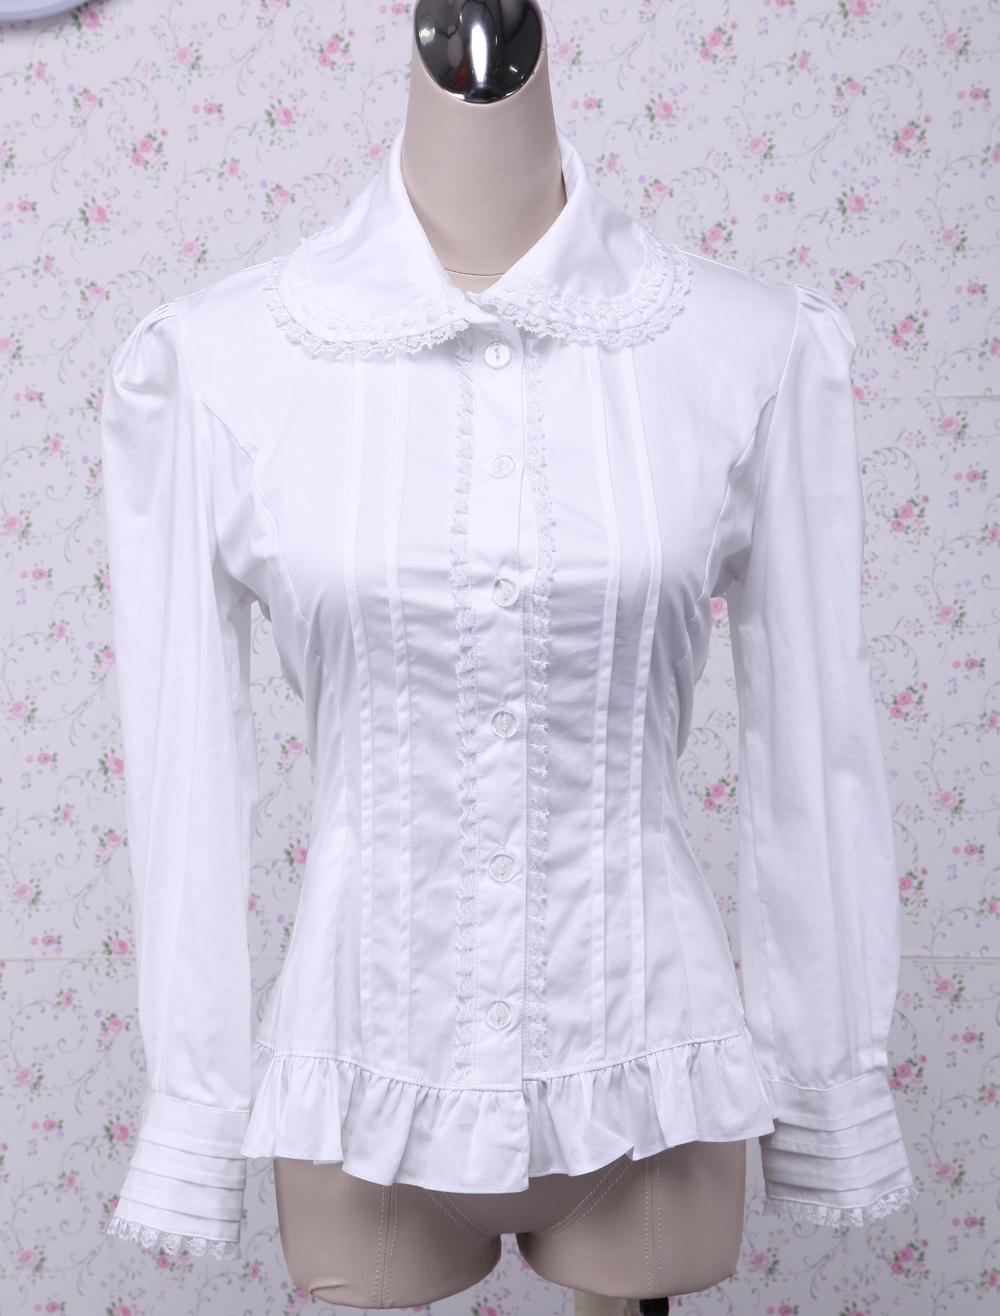 dc29e18ceb1 Lolitashow Cotton White Ruffles Long Sleeves Lolita Blouse - Lolitashow.com